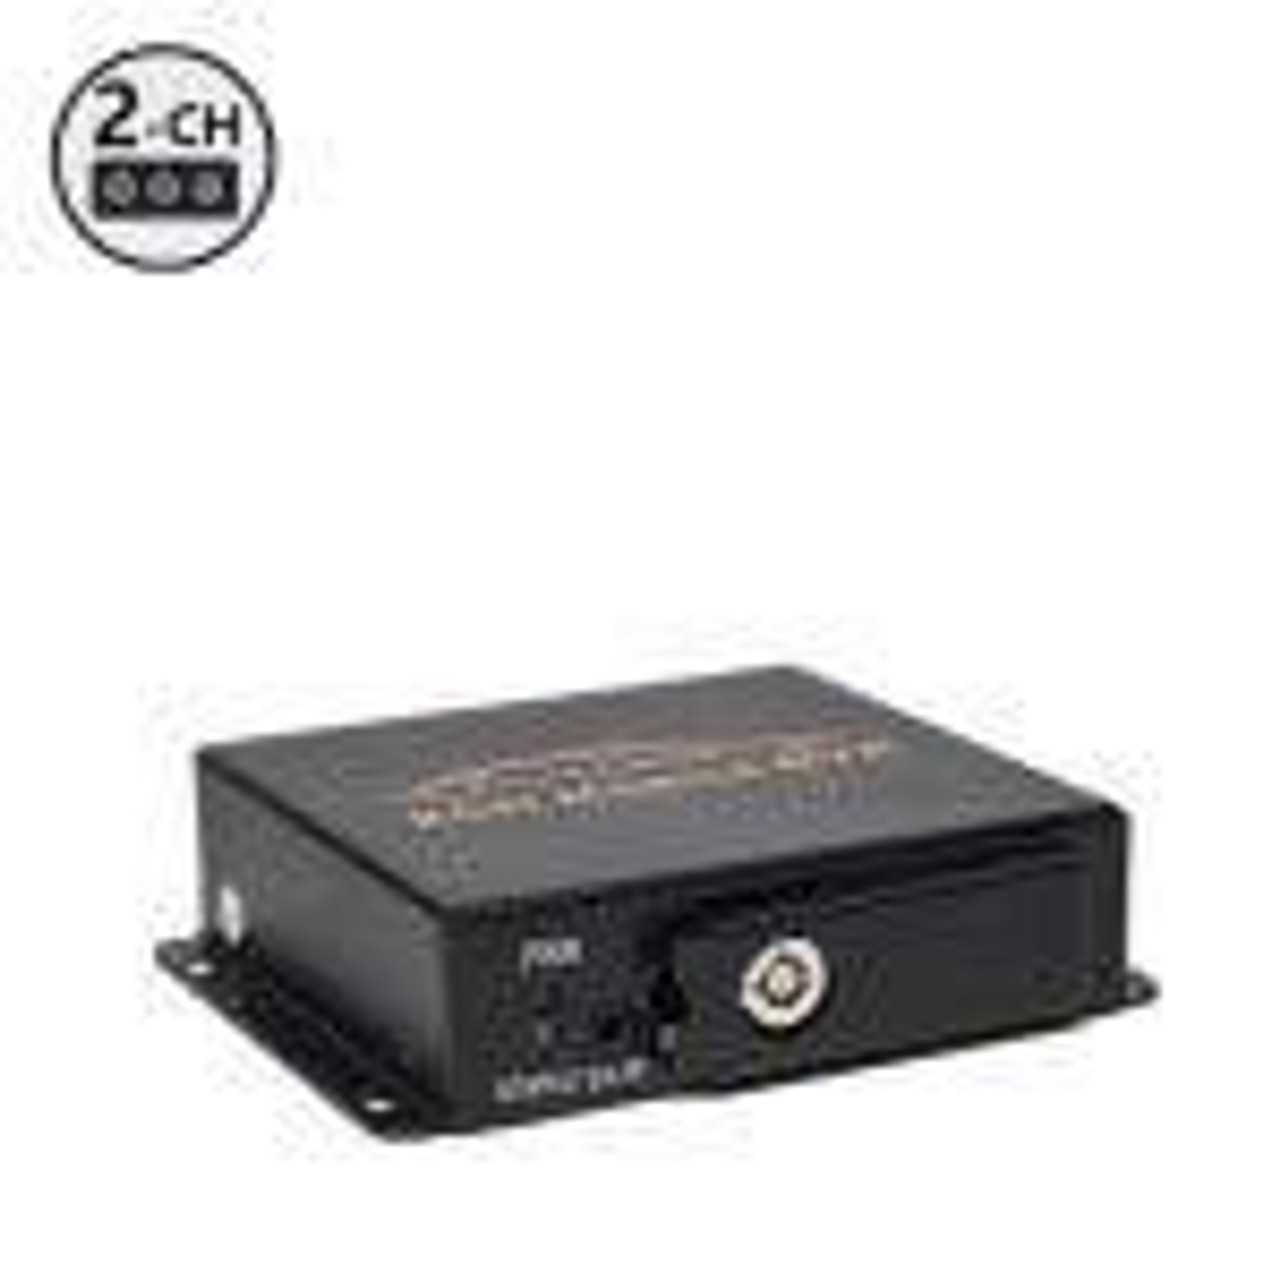 Mobilemule™ 2100 | 2 Channel Mobile DVR